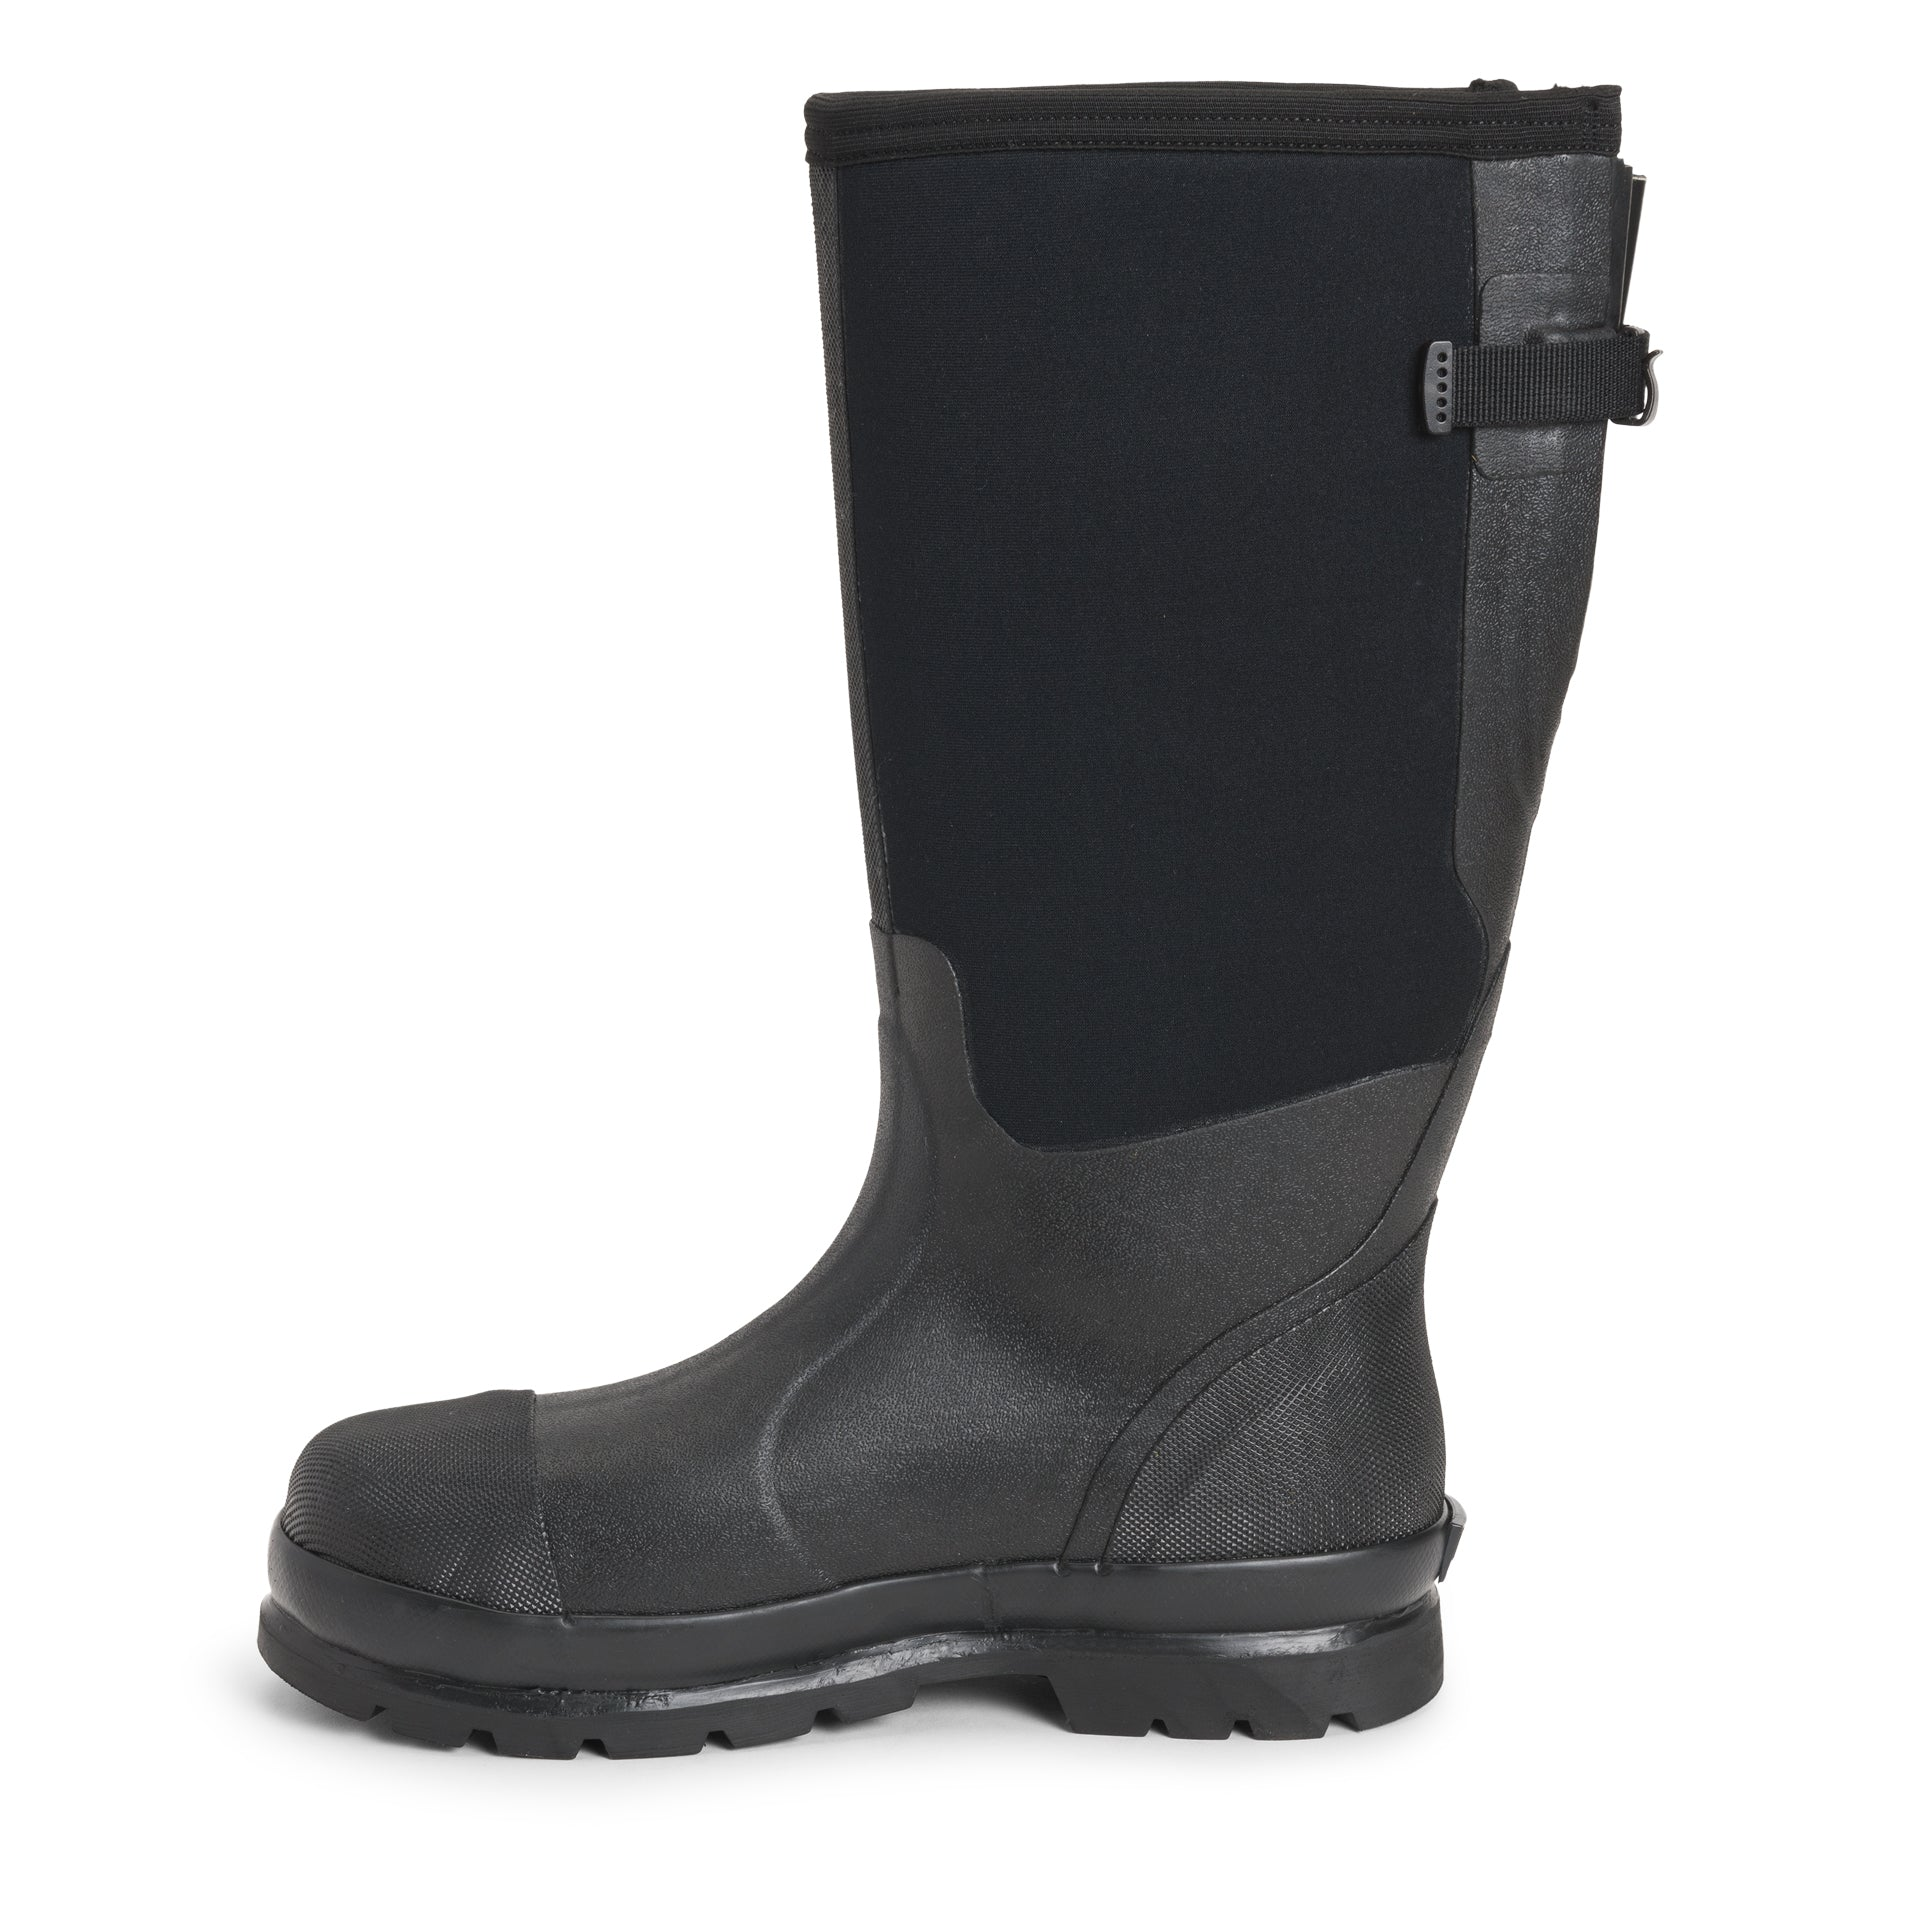 830edf9d63f Men's Chore Classic Steel Toe Wide Calf | The Original Muck Boot ...